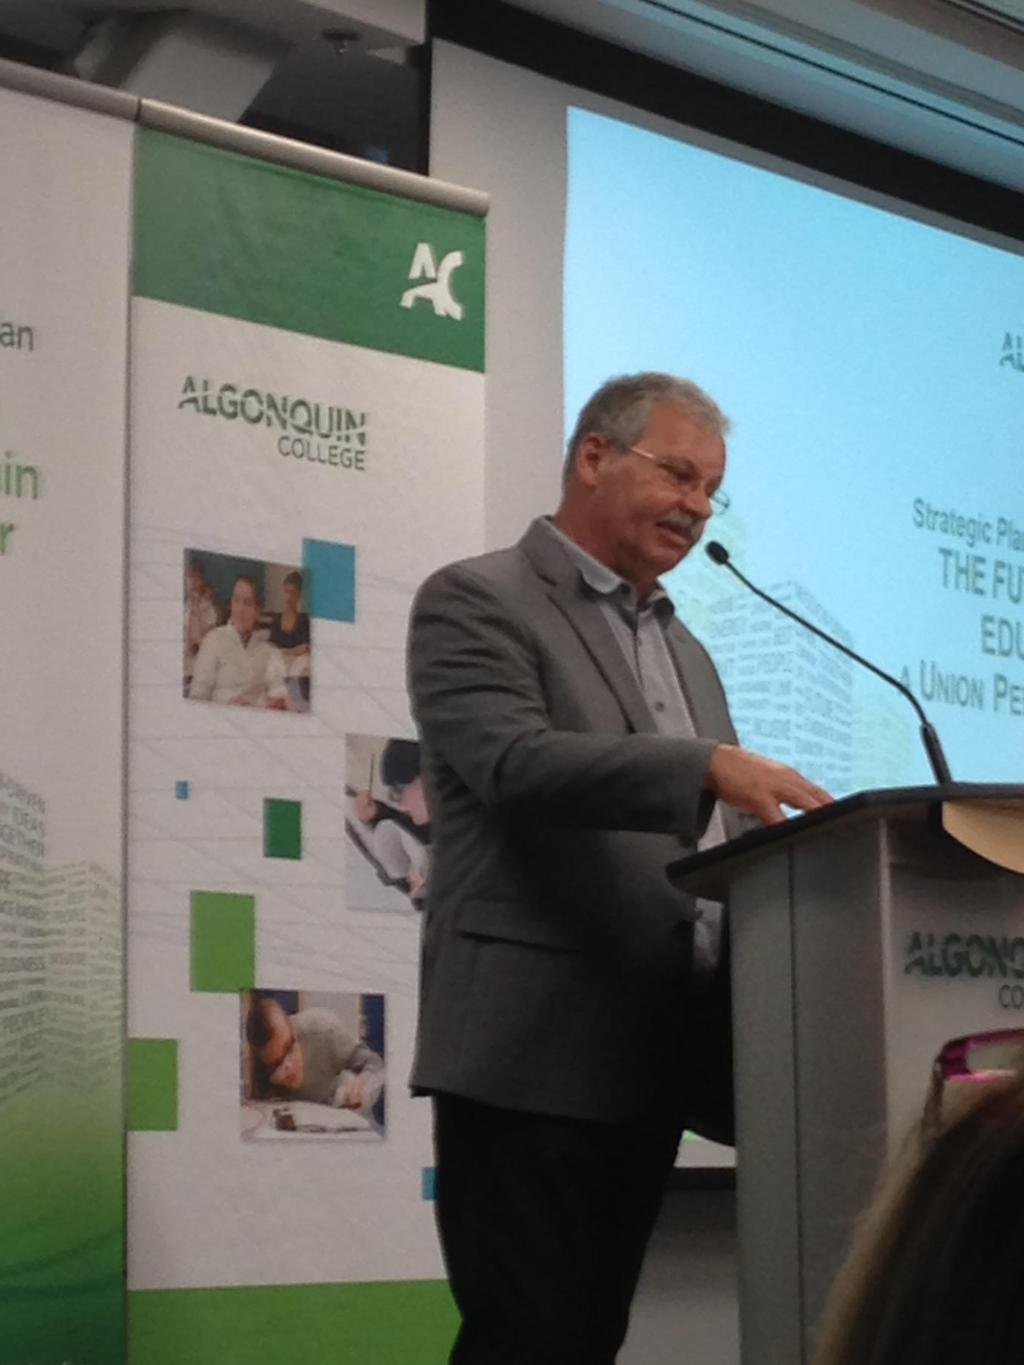 OPSEU President Warren (Smokey) Thomas gives a presentation on the future of education to Algonquin College, May 21.